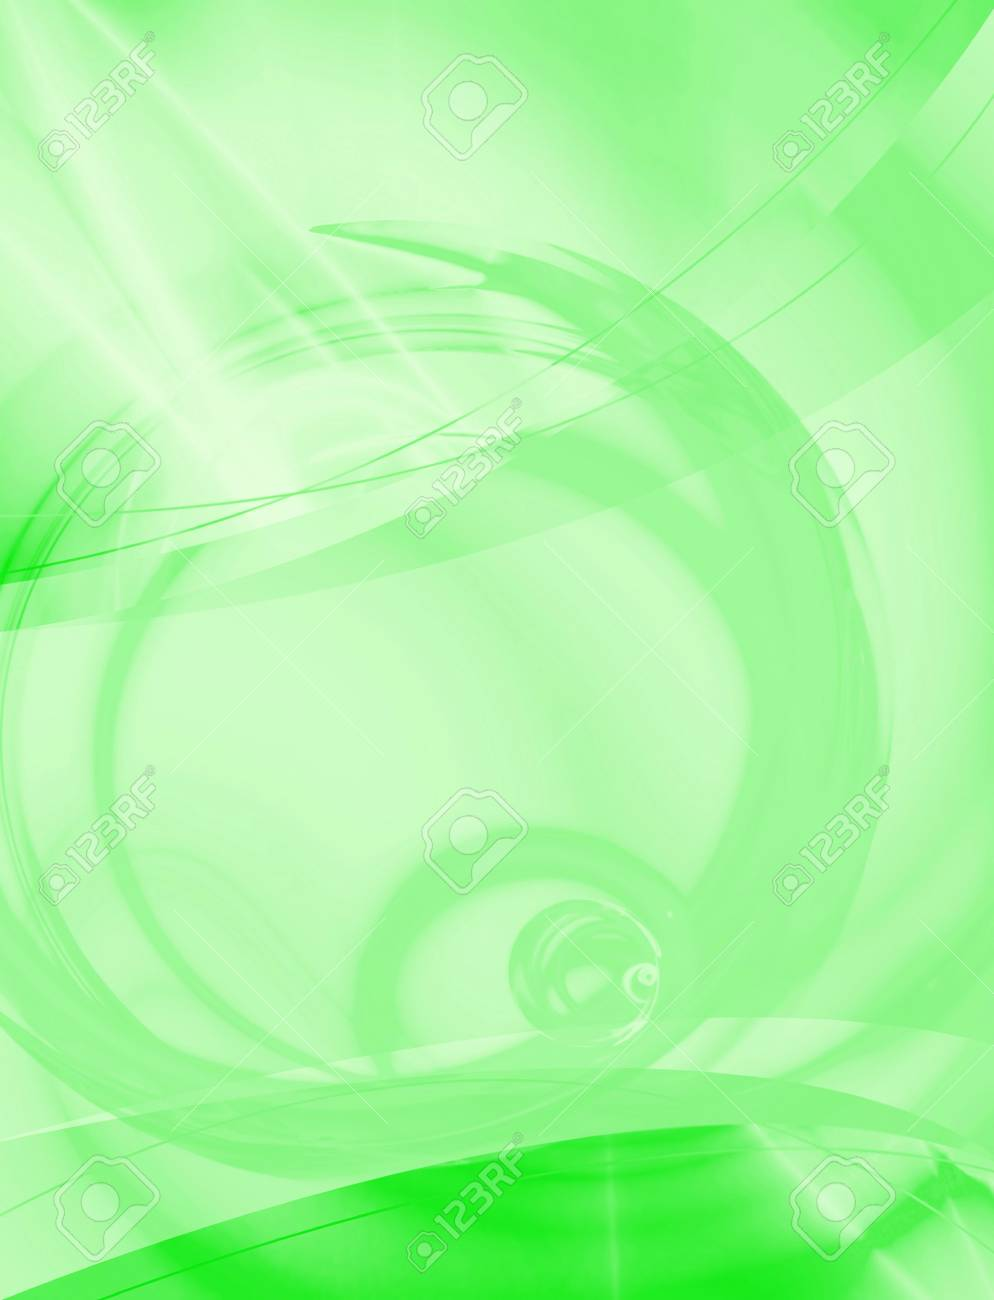 A green abstract background layout you can use as a template for any design piece. Stock Photo - 3410605